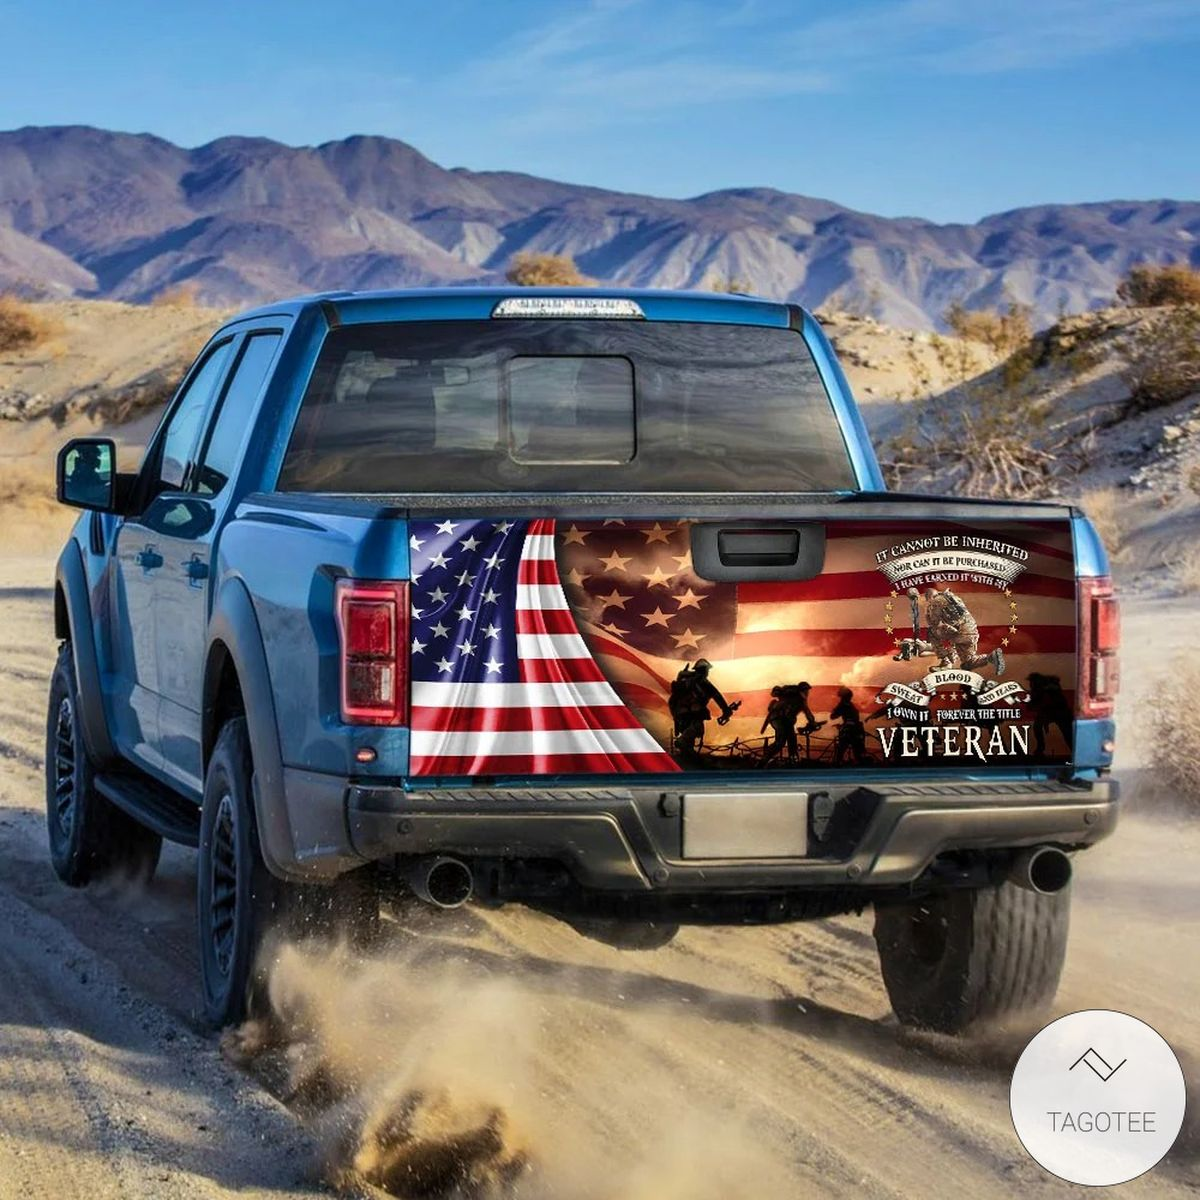 Forever The Title Veteran It Cannot Be Inherited Nor Can It Be Purchased I Have Earned It With My Blood Sweat And Tears Tailgate Wrapz